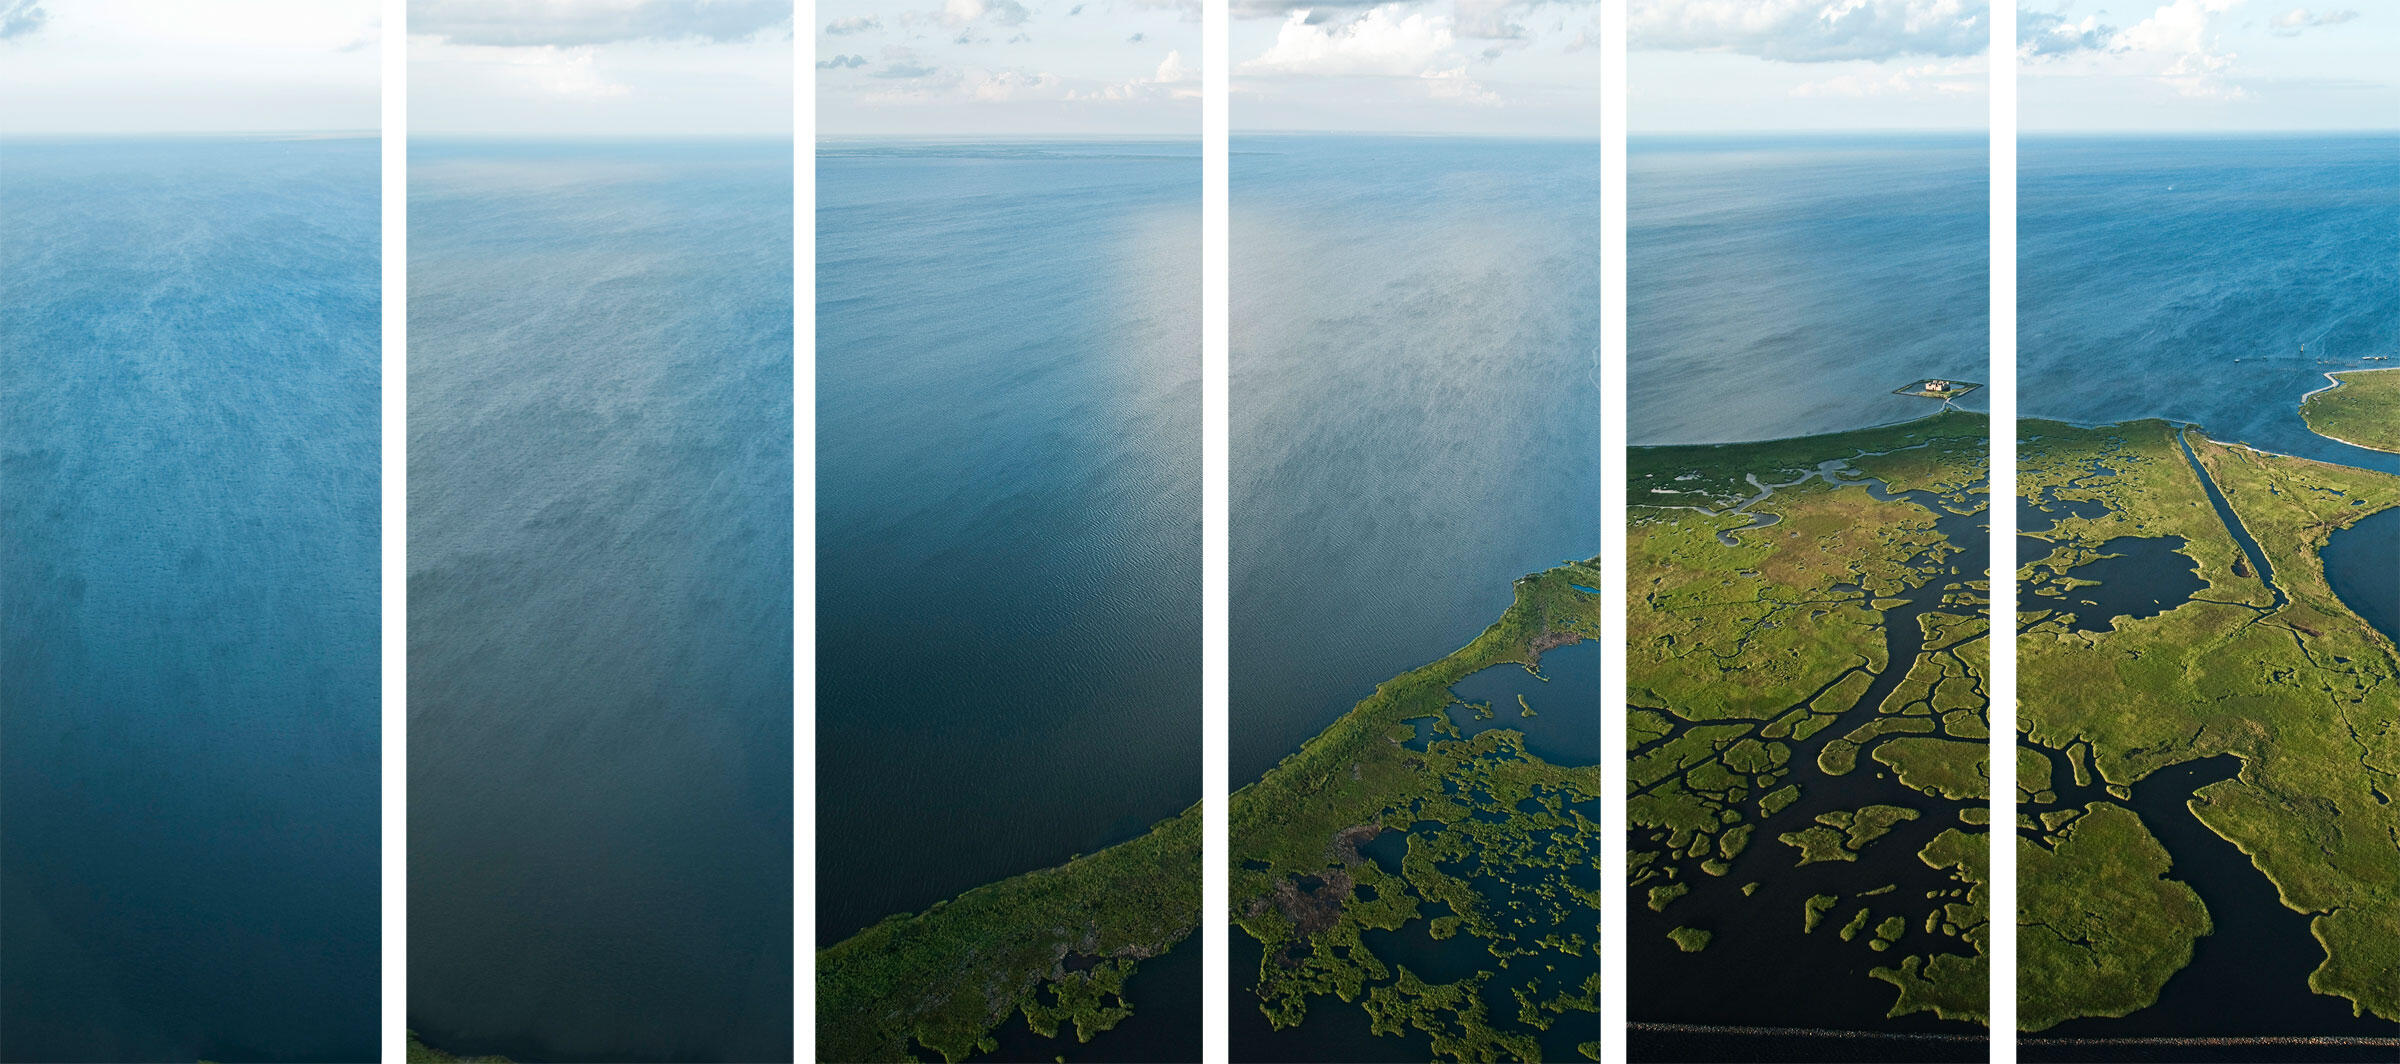 Thousands of mile of oil and gas canals have altered fragile Gulf marshes and allowed saltwater to penetrate coastal wetlands. A football field-size chunk of wetlands vanishes into open water almost every hour. Michel Varisco